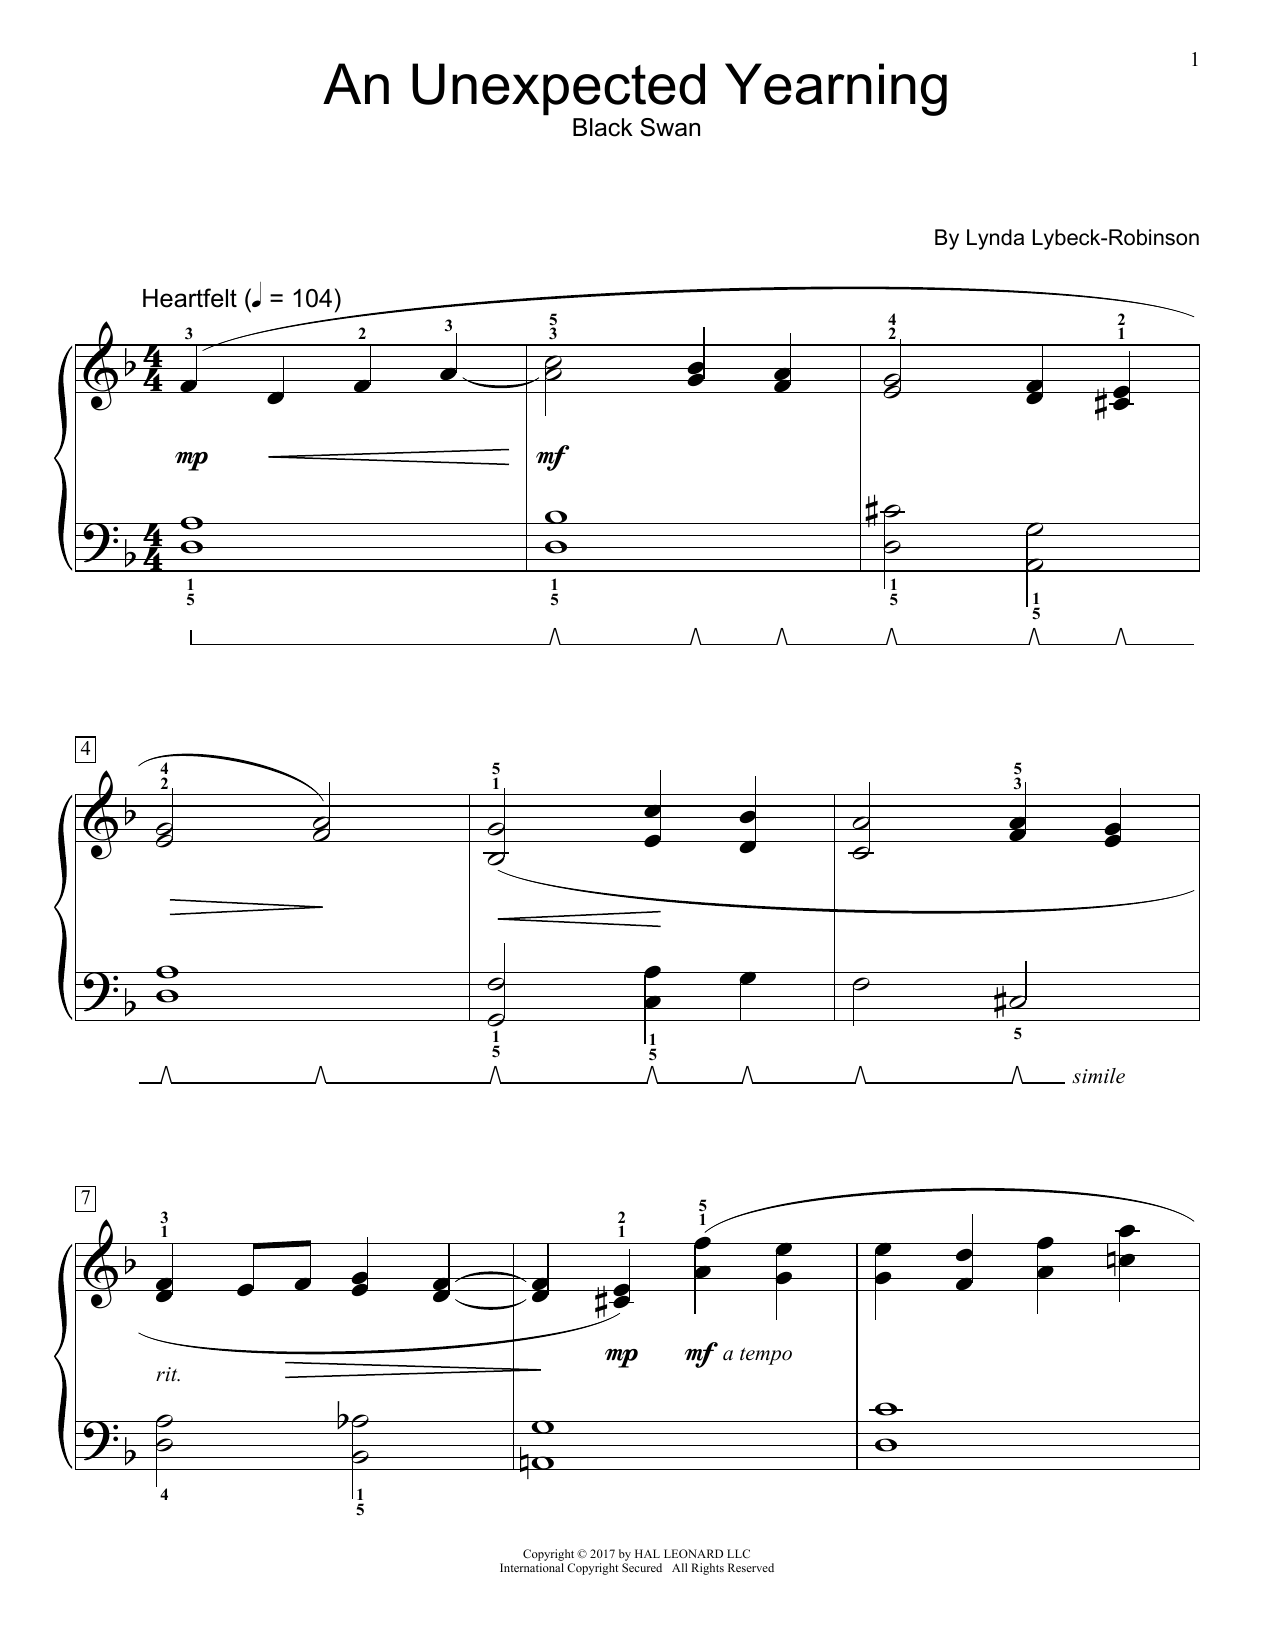 Lynda Lybeck-Robinson An Unexpected Yearning sheet music notes and chords. Download Printable PDF.